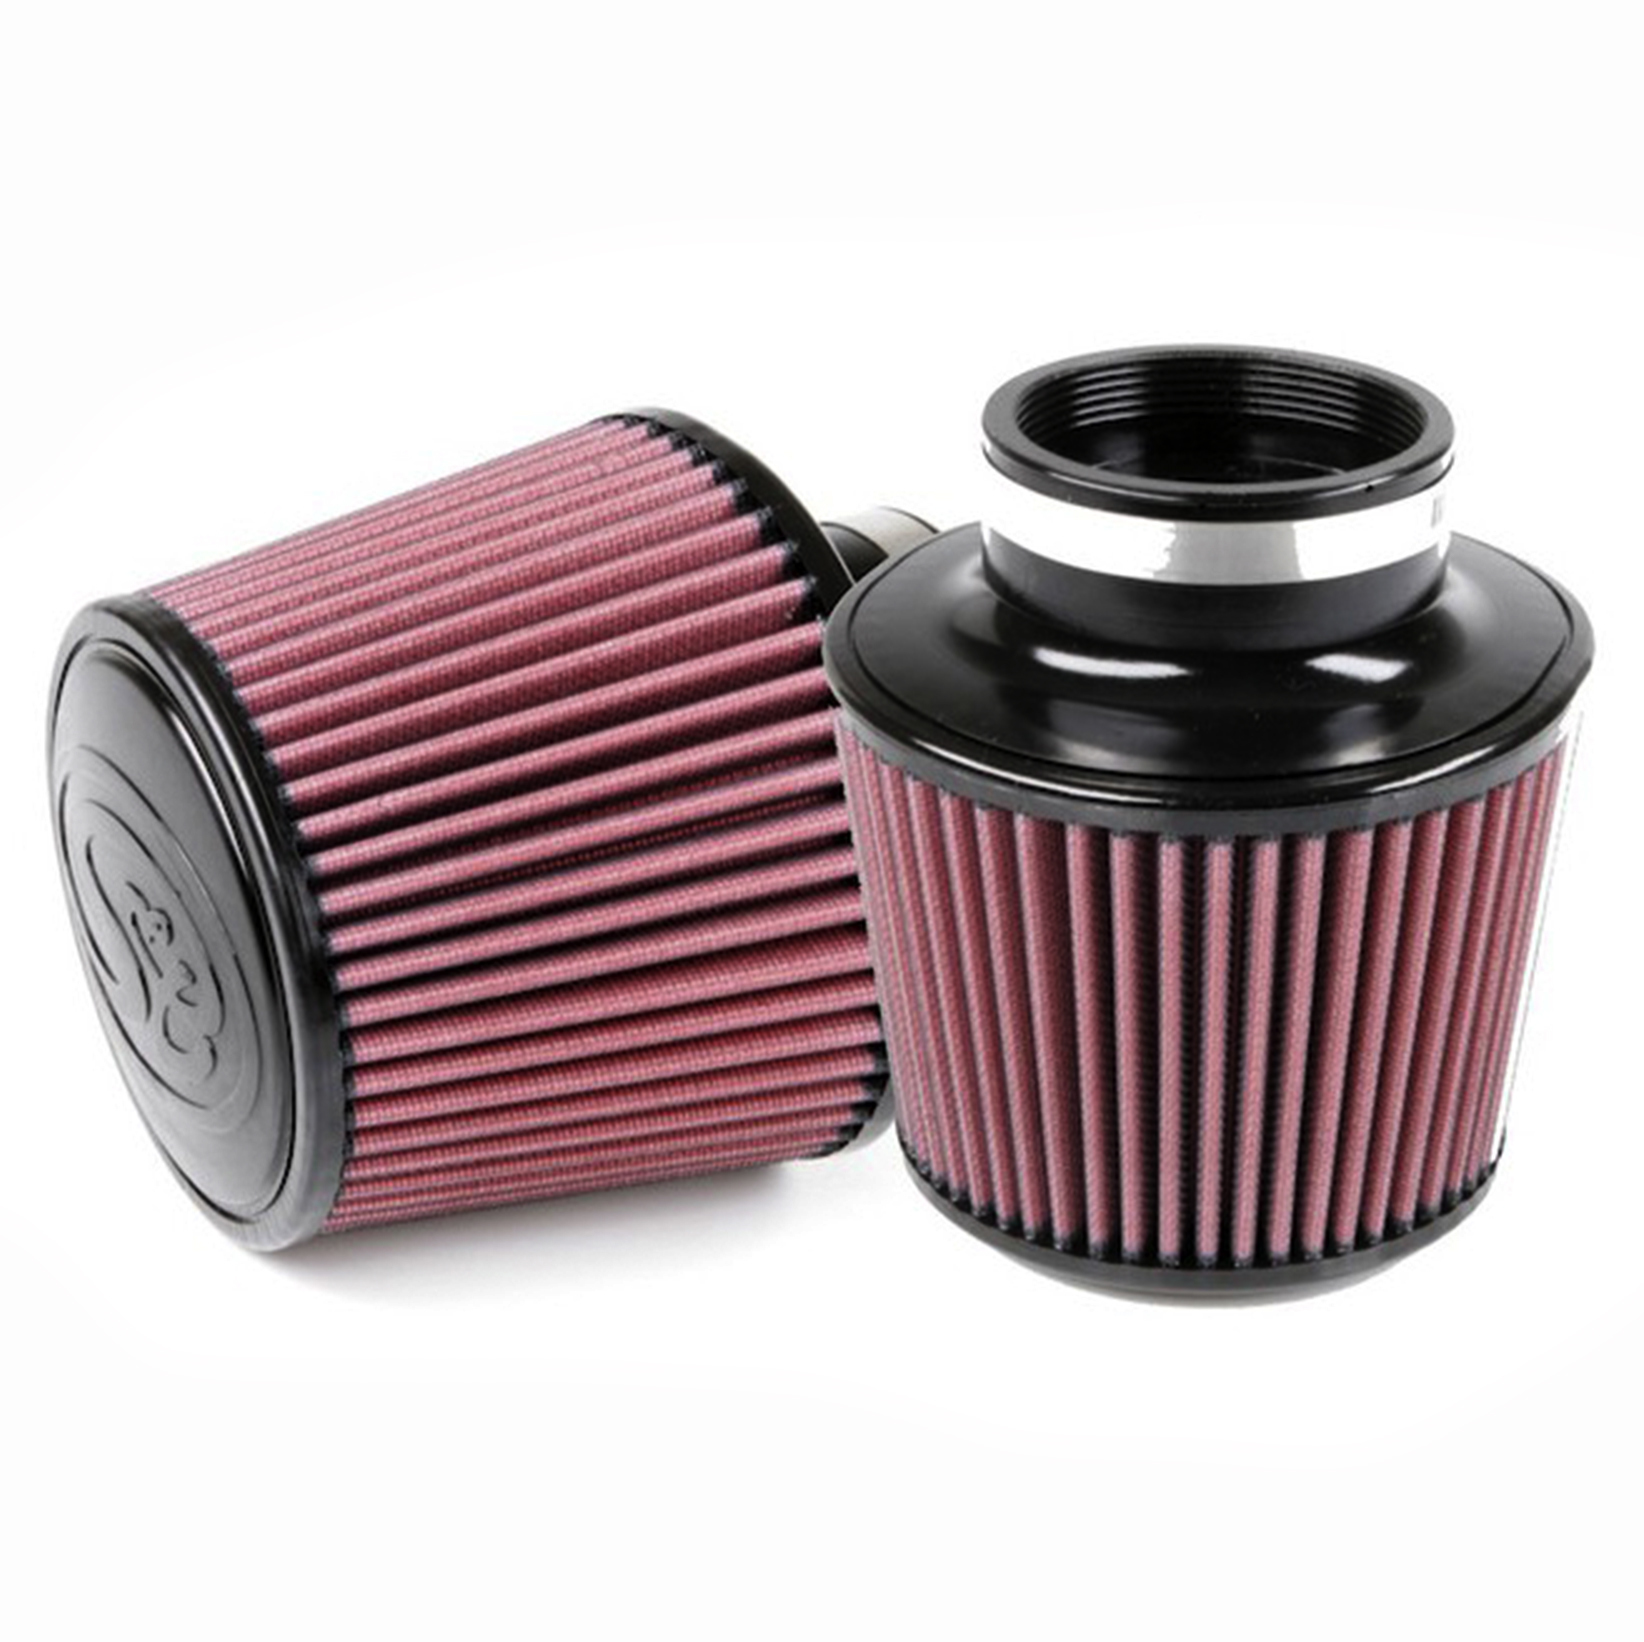 S&B Intake Replacement Filters